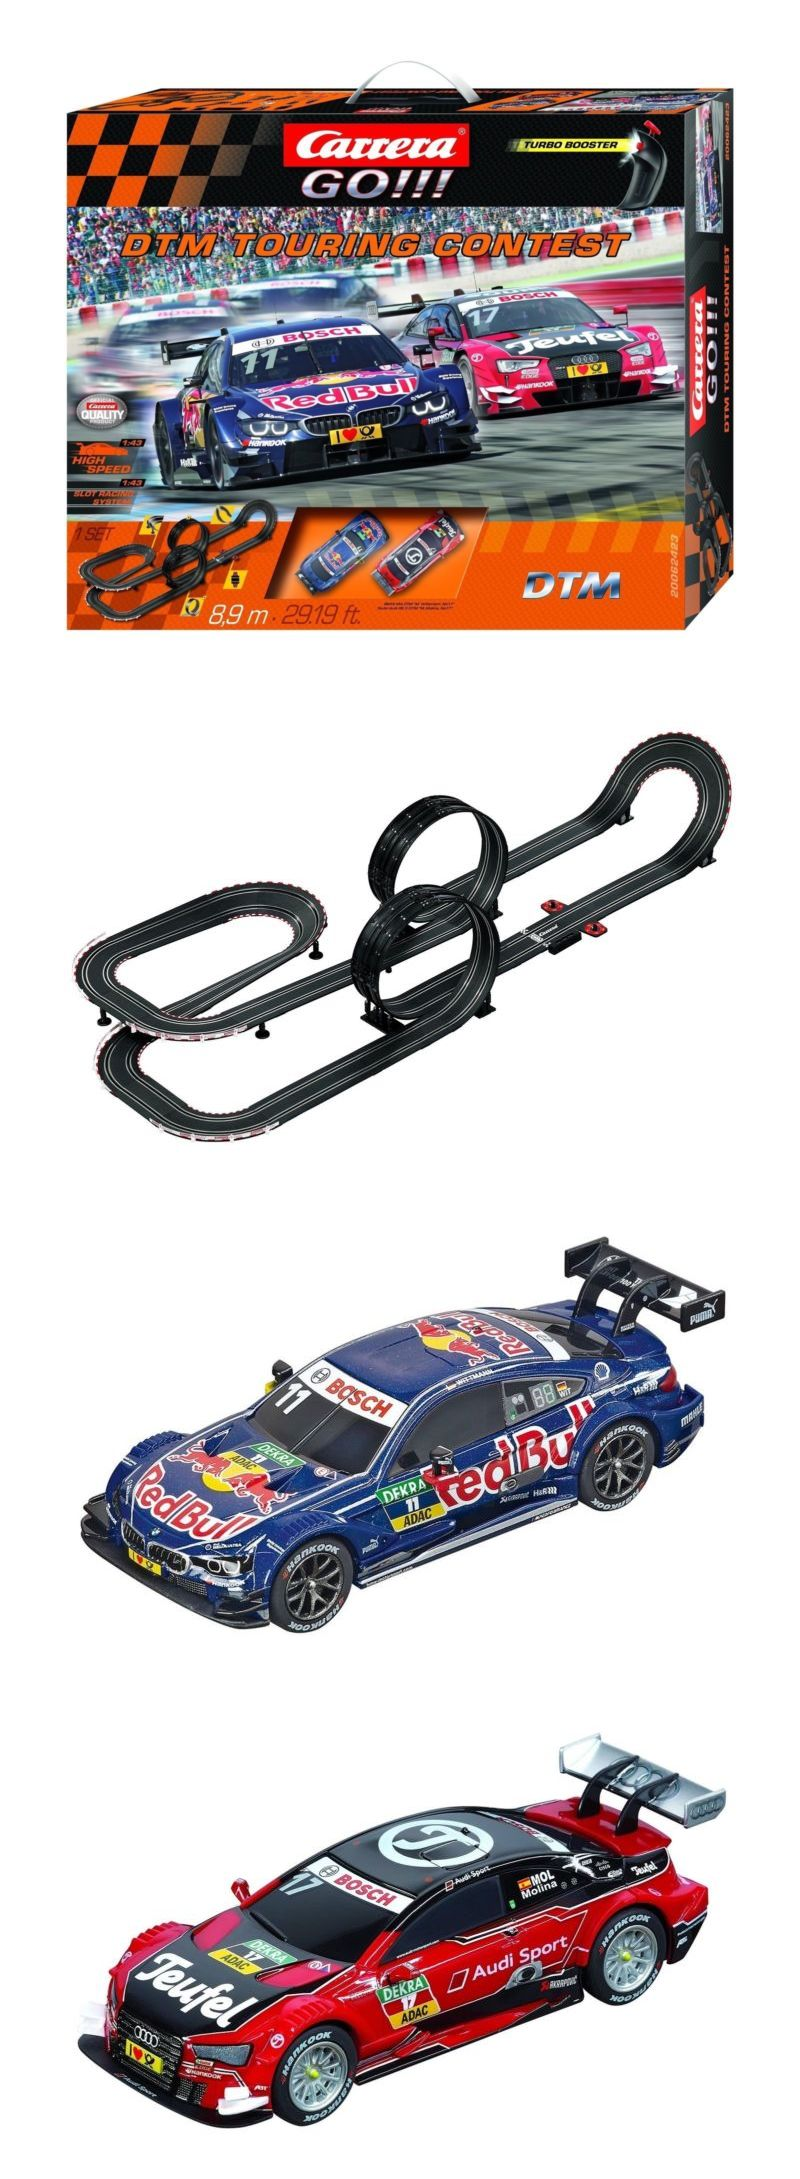 1 43 Scale 164793 Carrera Go Dtm Touring Contest 1 43 Scale Analog Slot Car Race Set 62423 Buy It Now Only 99 99 On E Slot Car Racing Carrera Touring